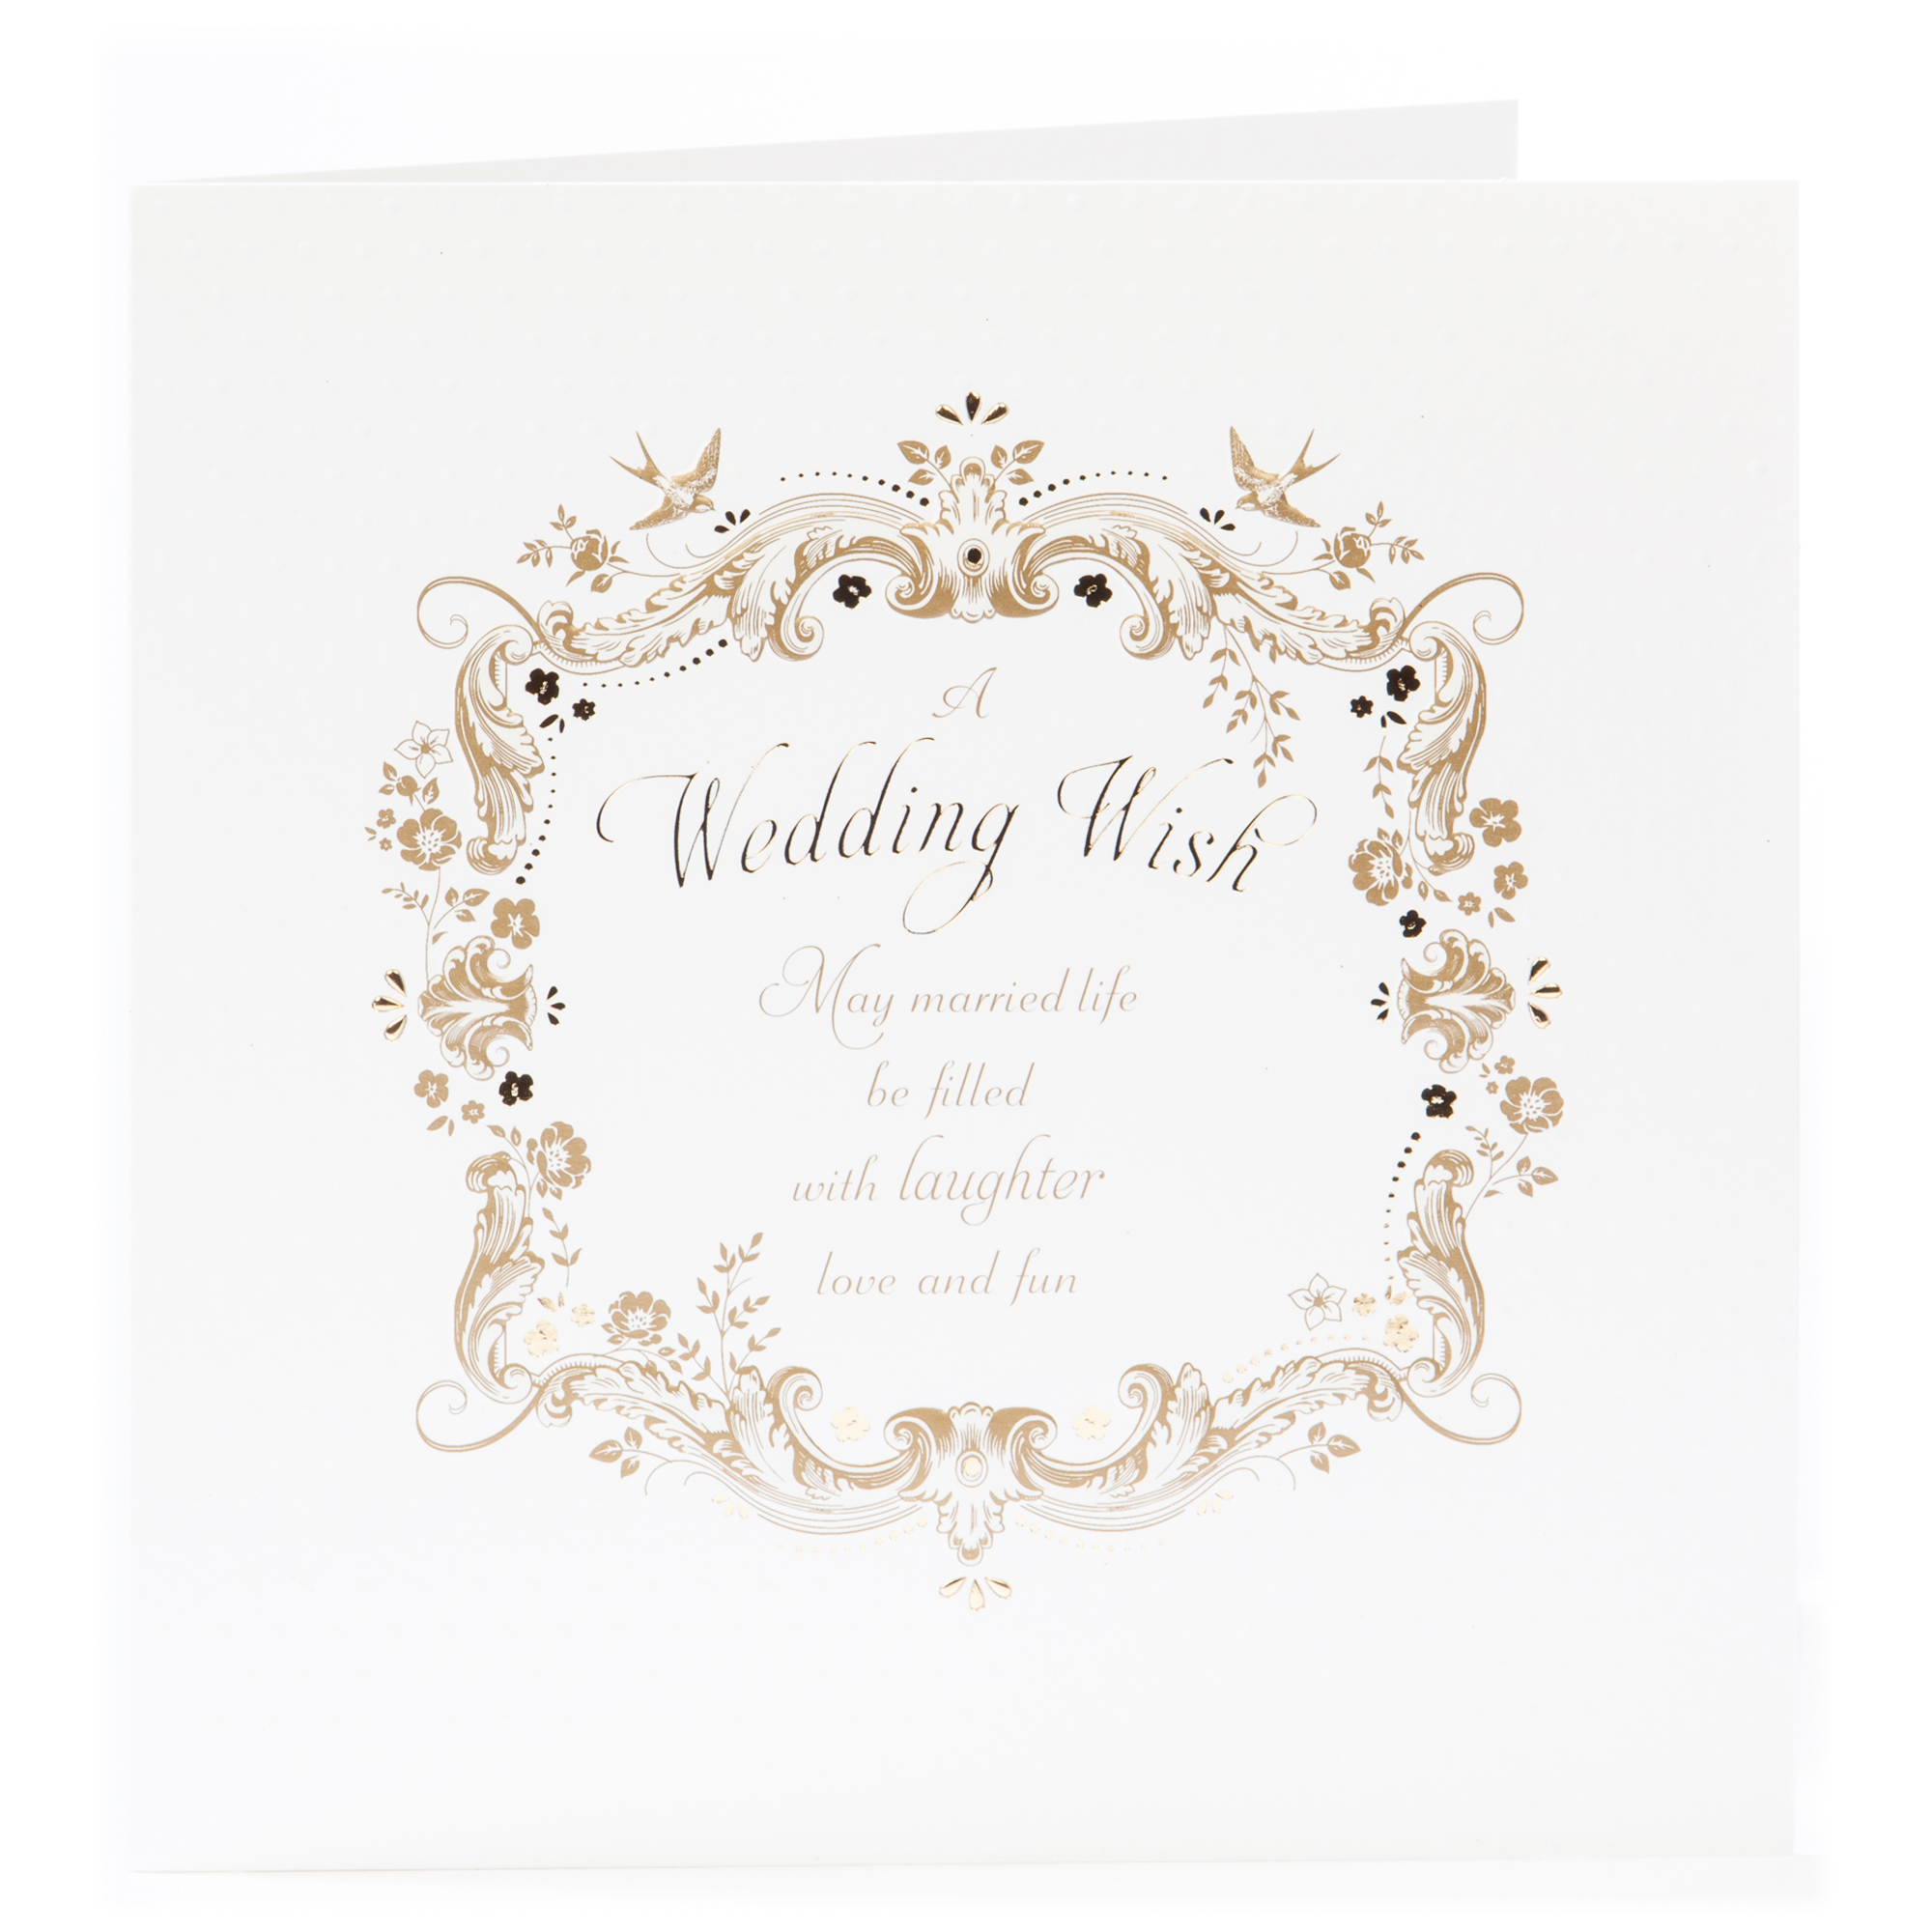 Platinum Collection Wedding Card - Married Life